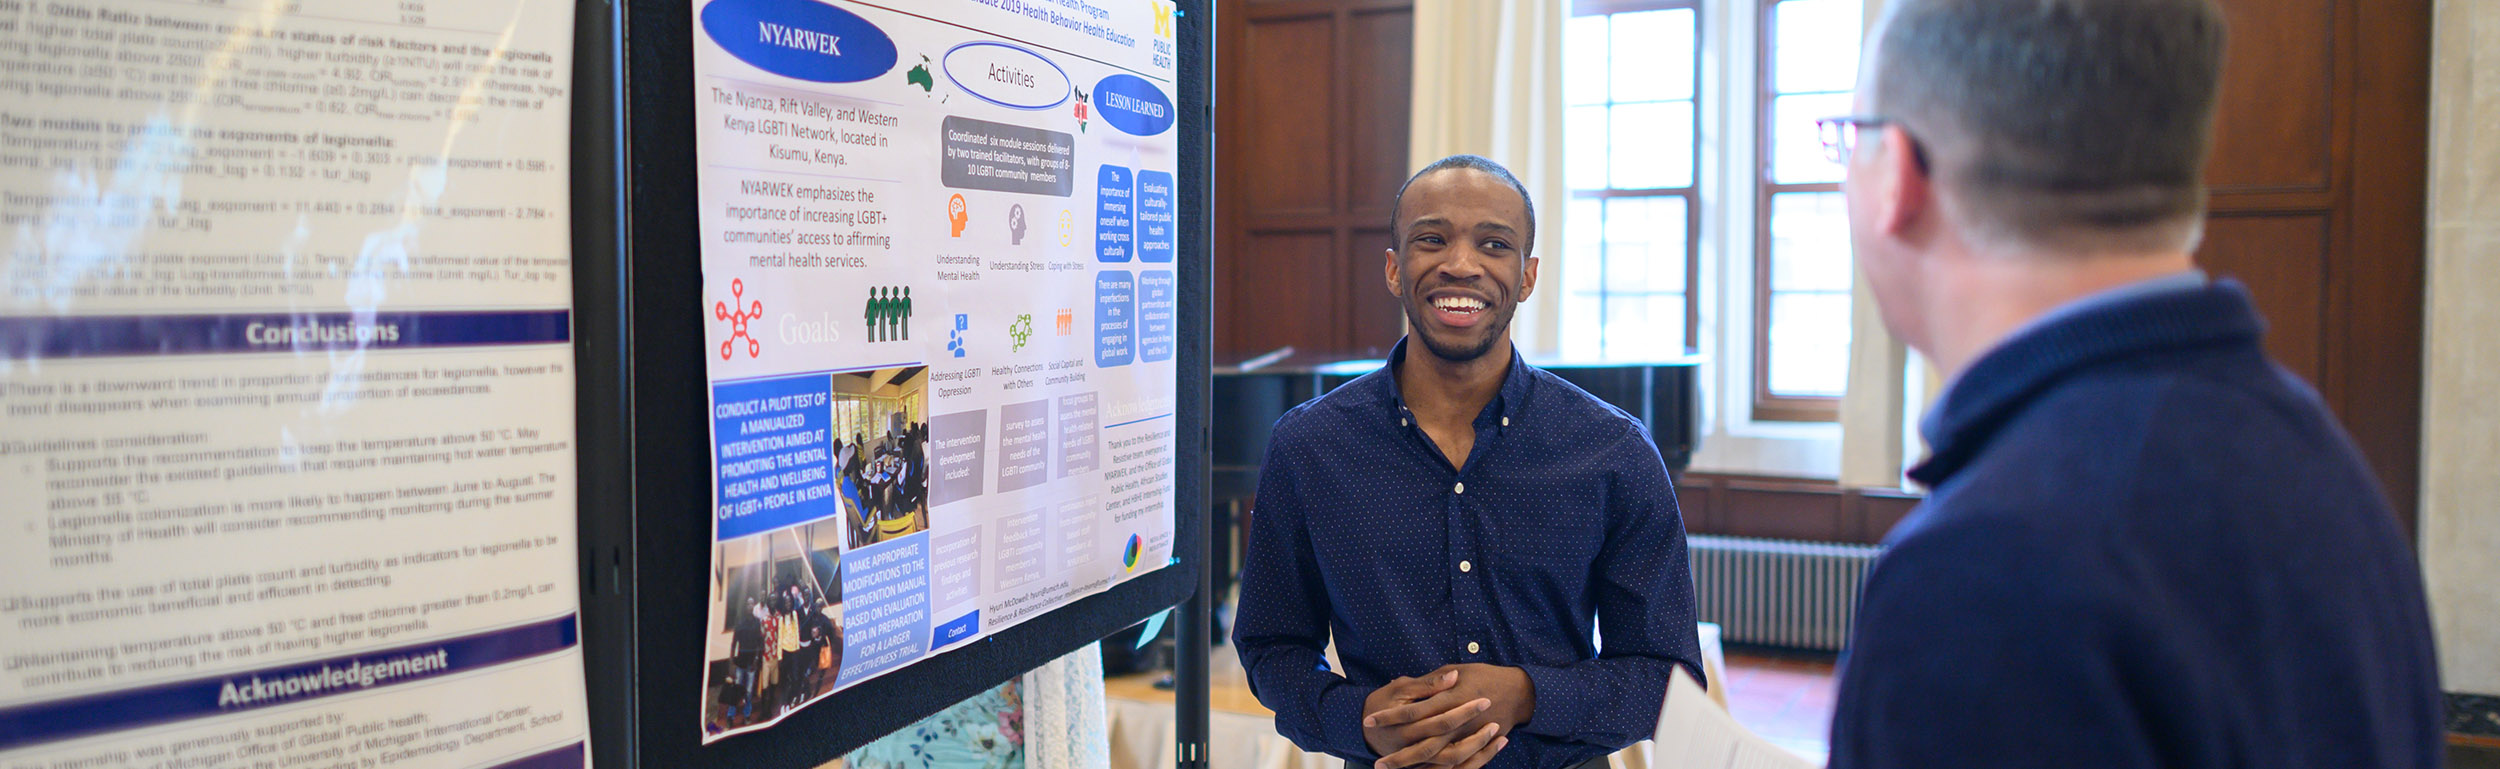 student at poster session